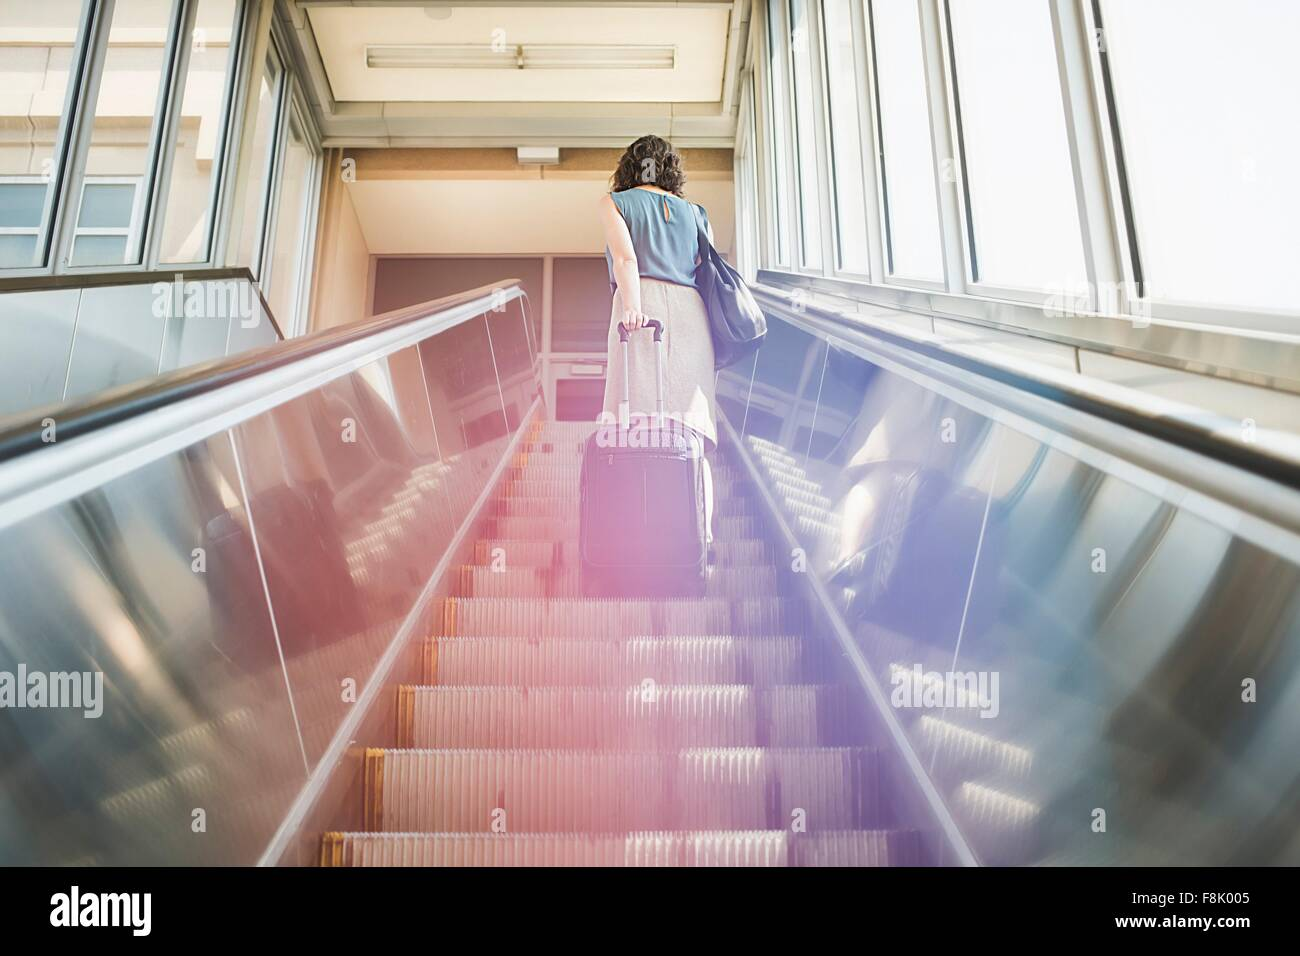 Mid adult woman using escalator, holding wheeled suitcase, rear view, low angle view - Stock Image